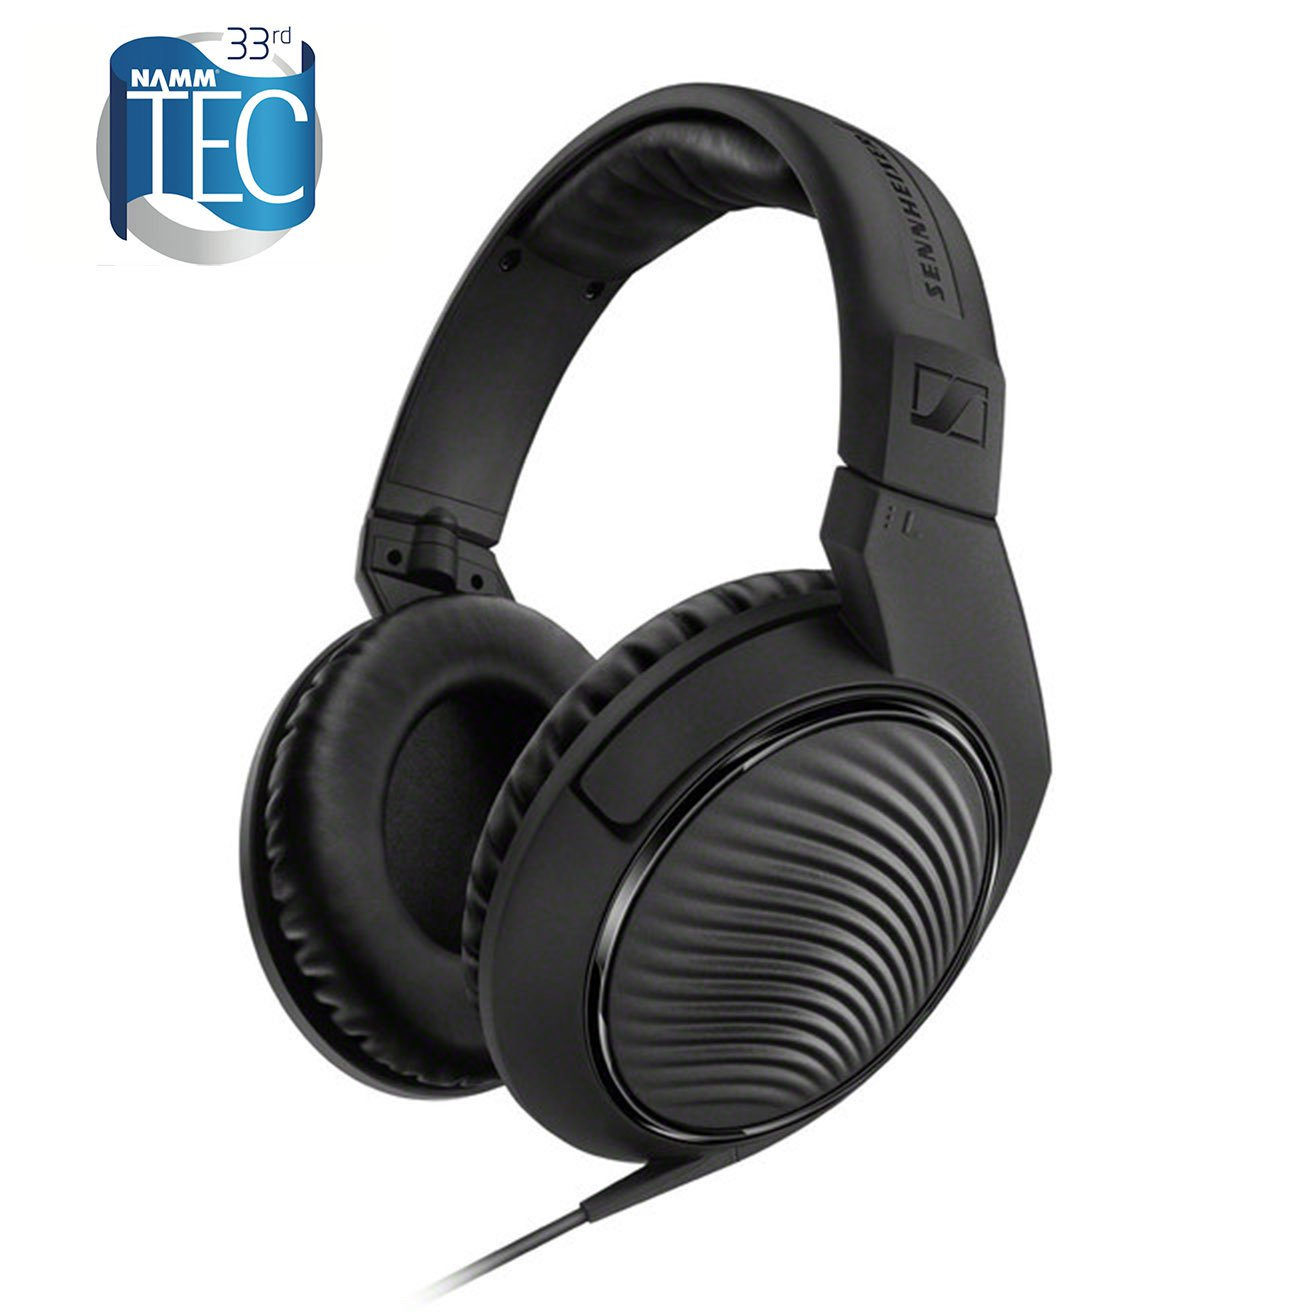 Headphones HD200 PRO fechados dinamicos